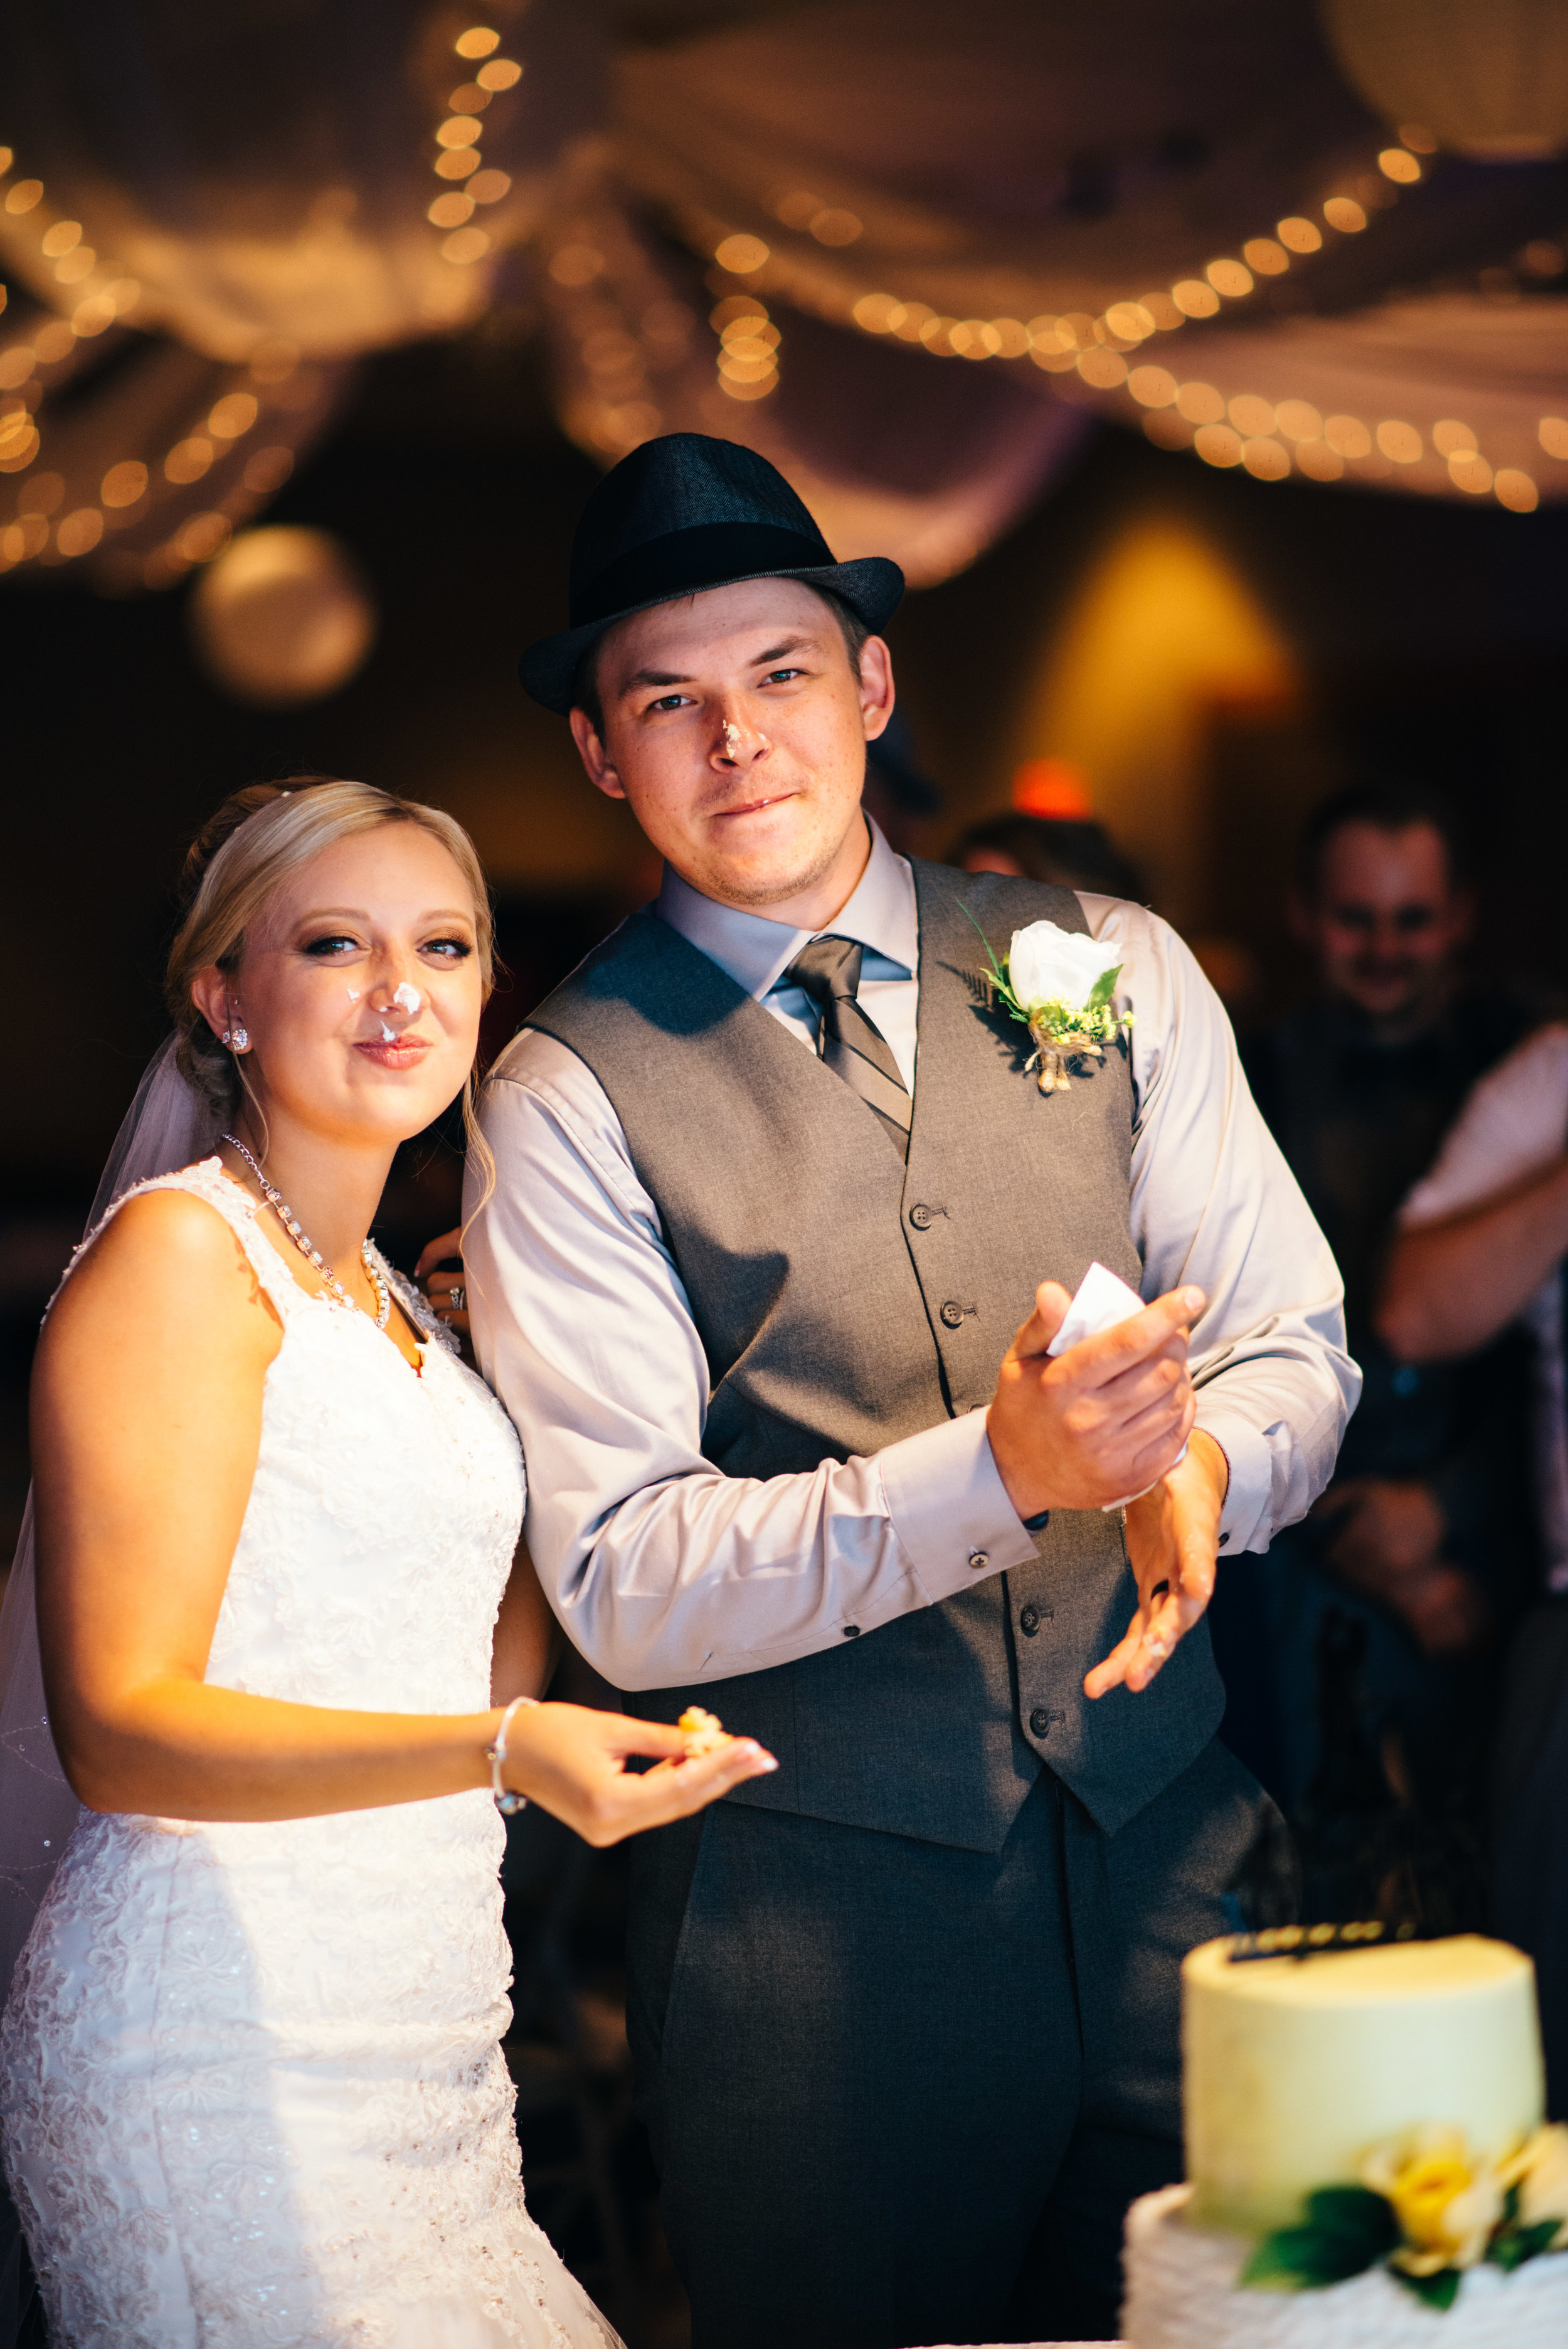 Bride and groom with icing on their faces after cake smash at Carrolltown Fire Co. Banquet Hall